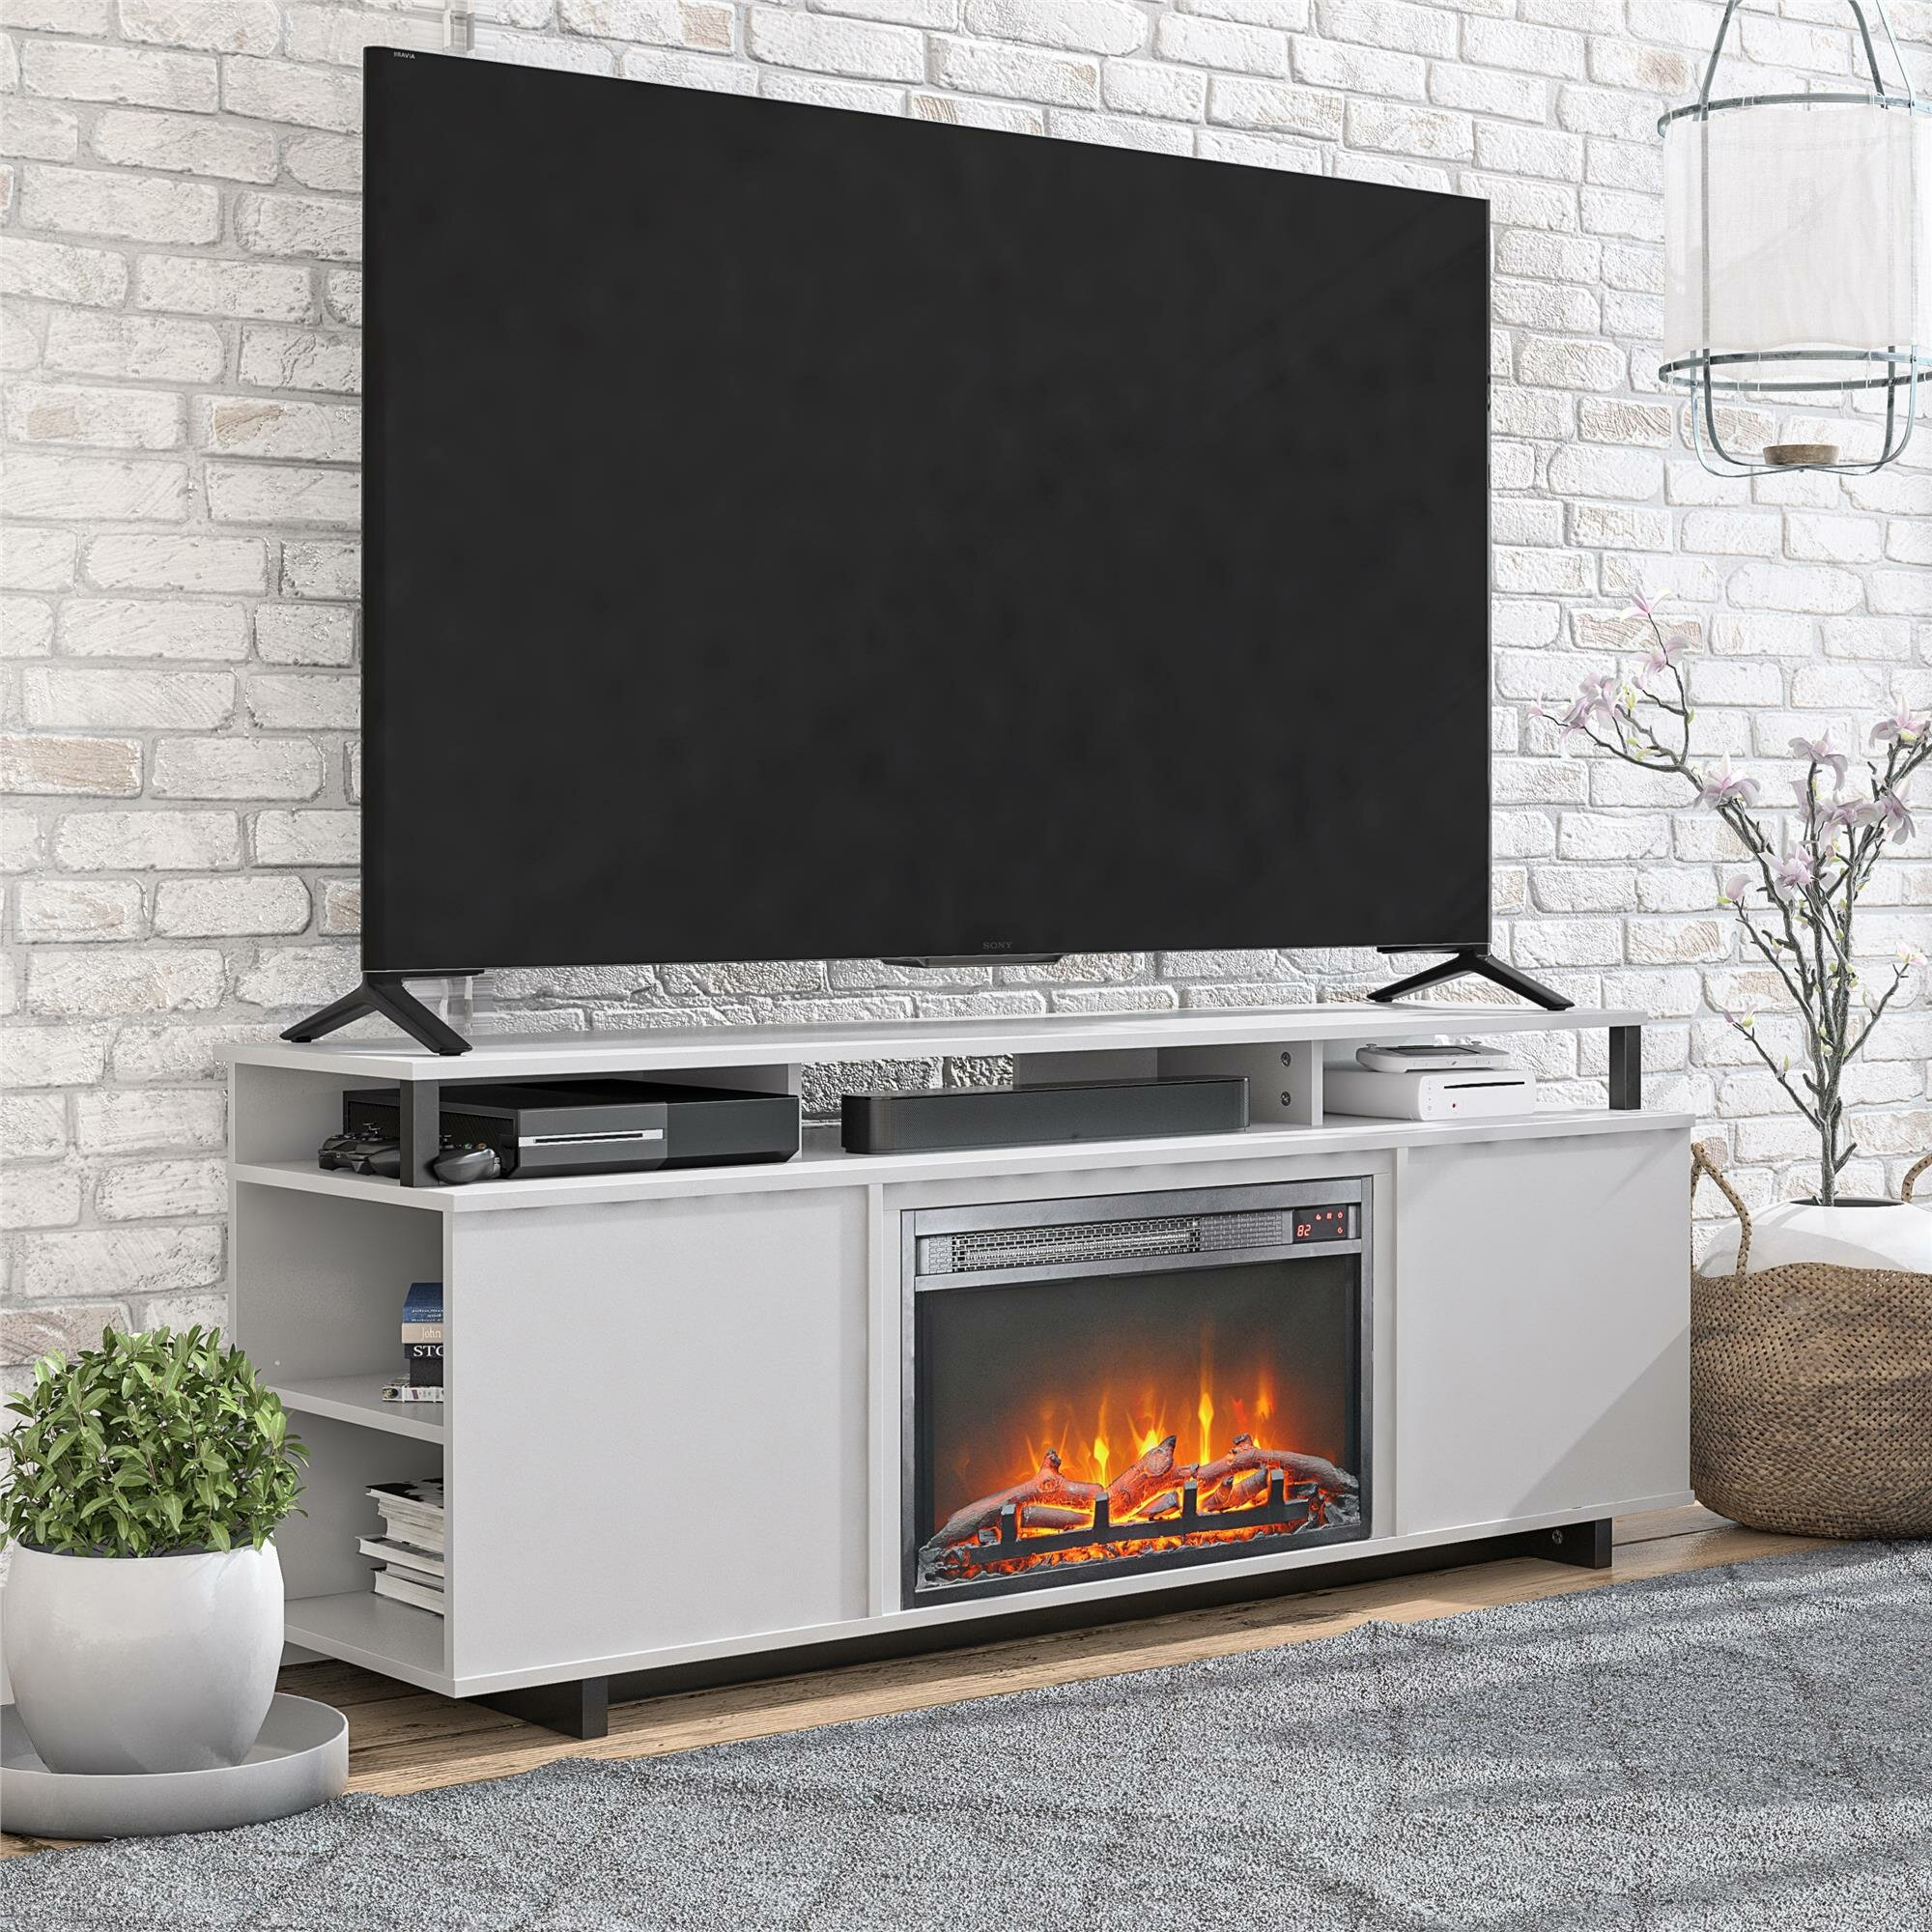 Zipcode Design Wolla Tv Stand For Tvs Up To 65 With Fireplace Included Reviews Wayfair